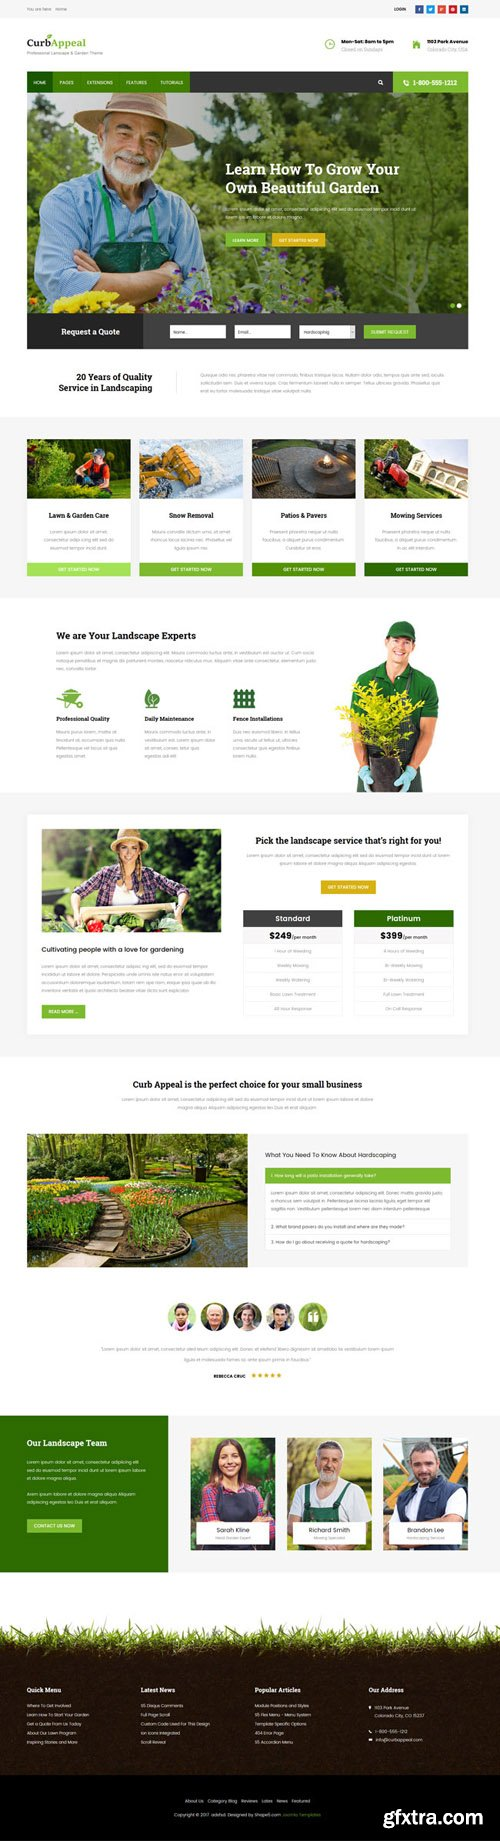 Shape5 - Curb Appeal v1.0.3 - Joomla Template